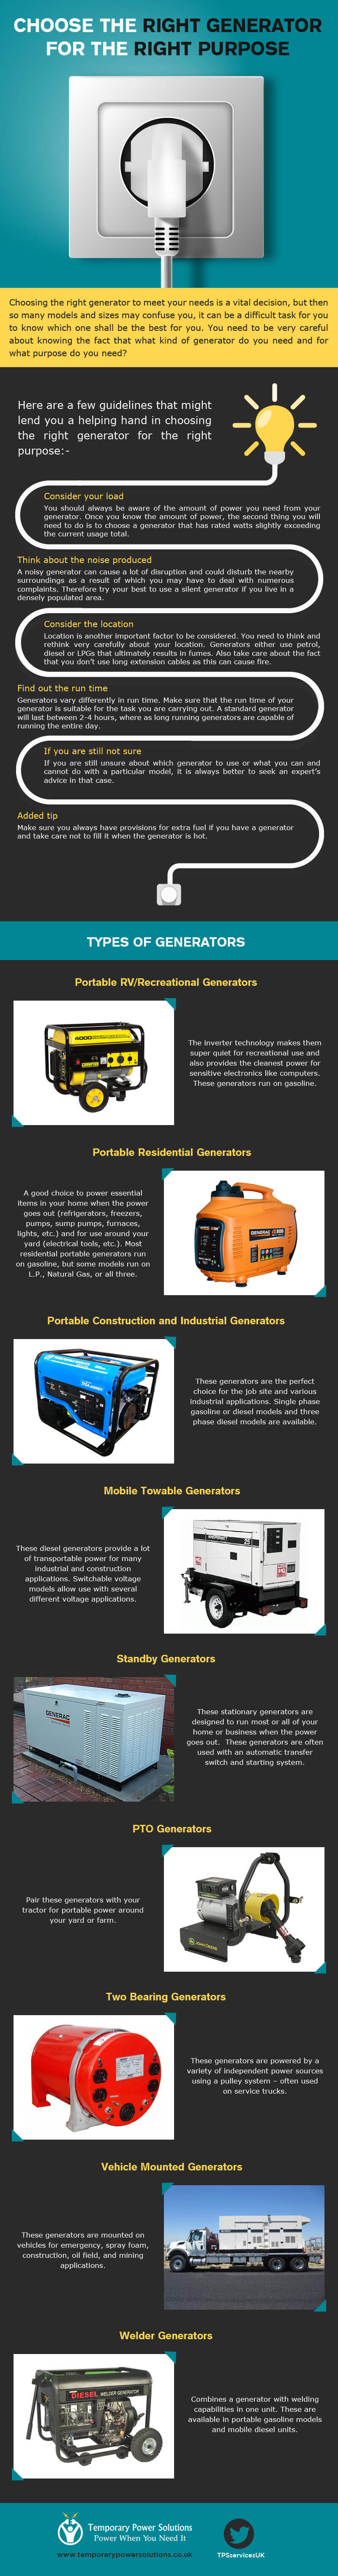 5 Best Portable Generators For Home Use Kravelv House But Also Has Been Wiring Into